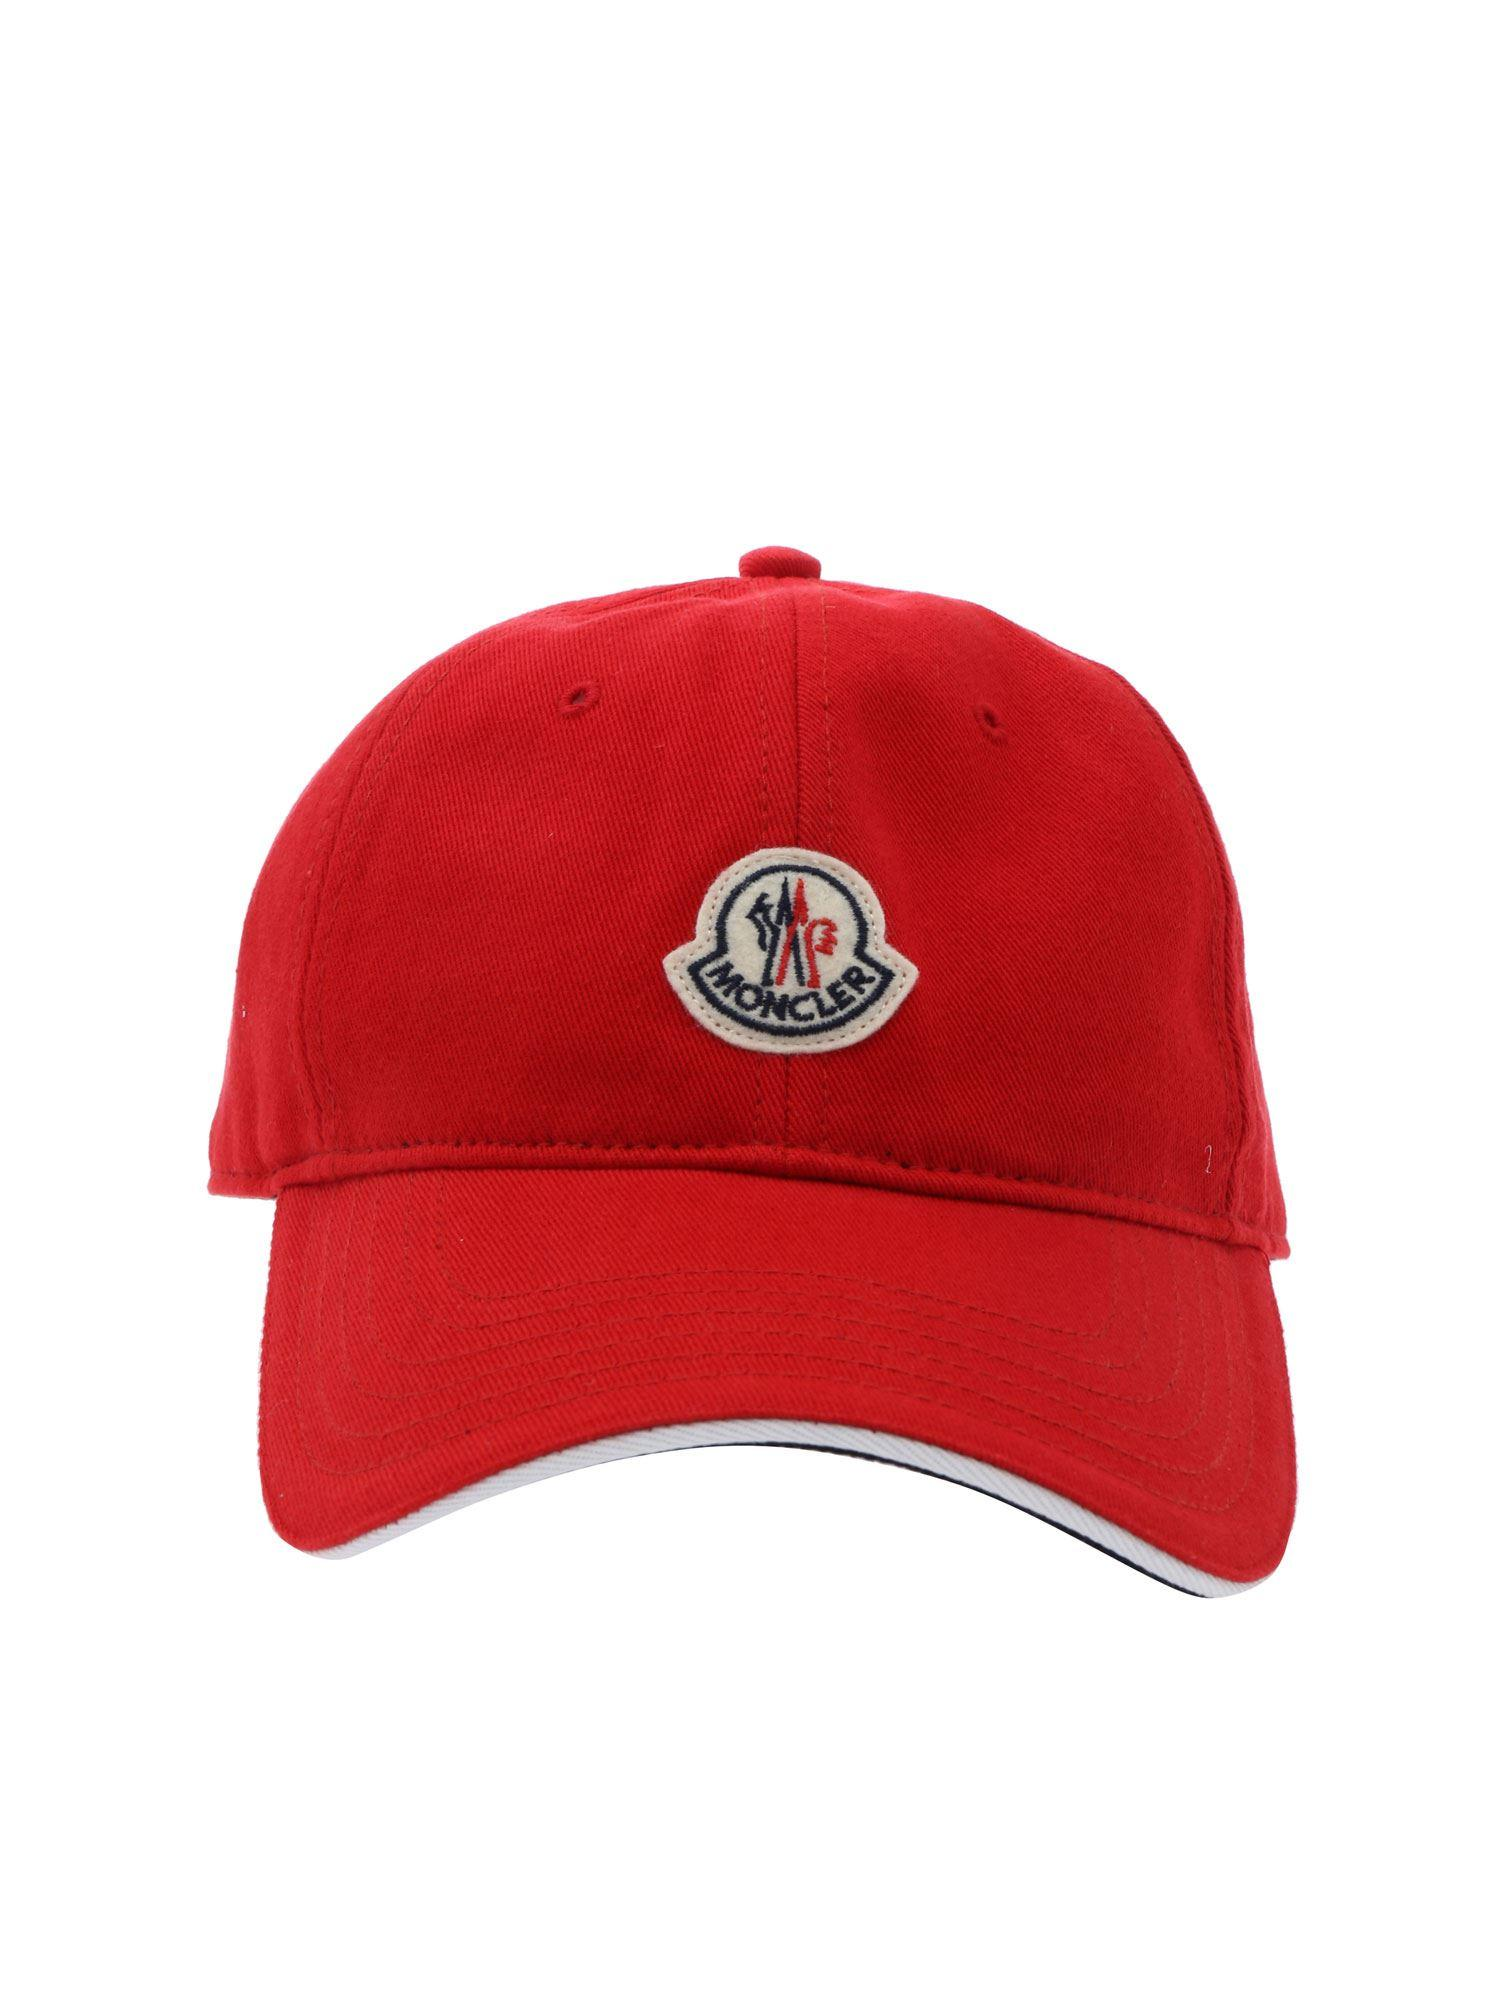 4593fdb361fe1b Lyst - Moncler Red Baseball Cap in Red for Men